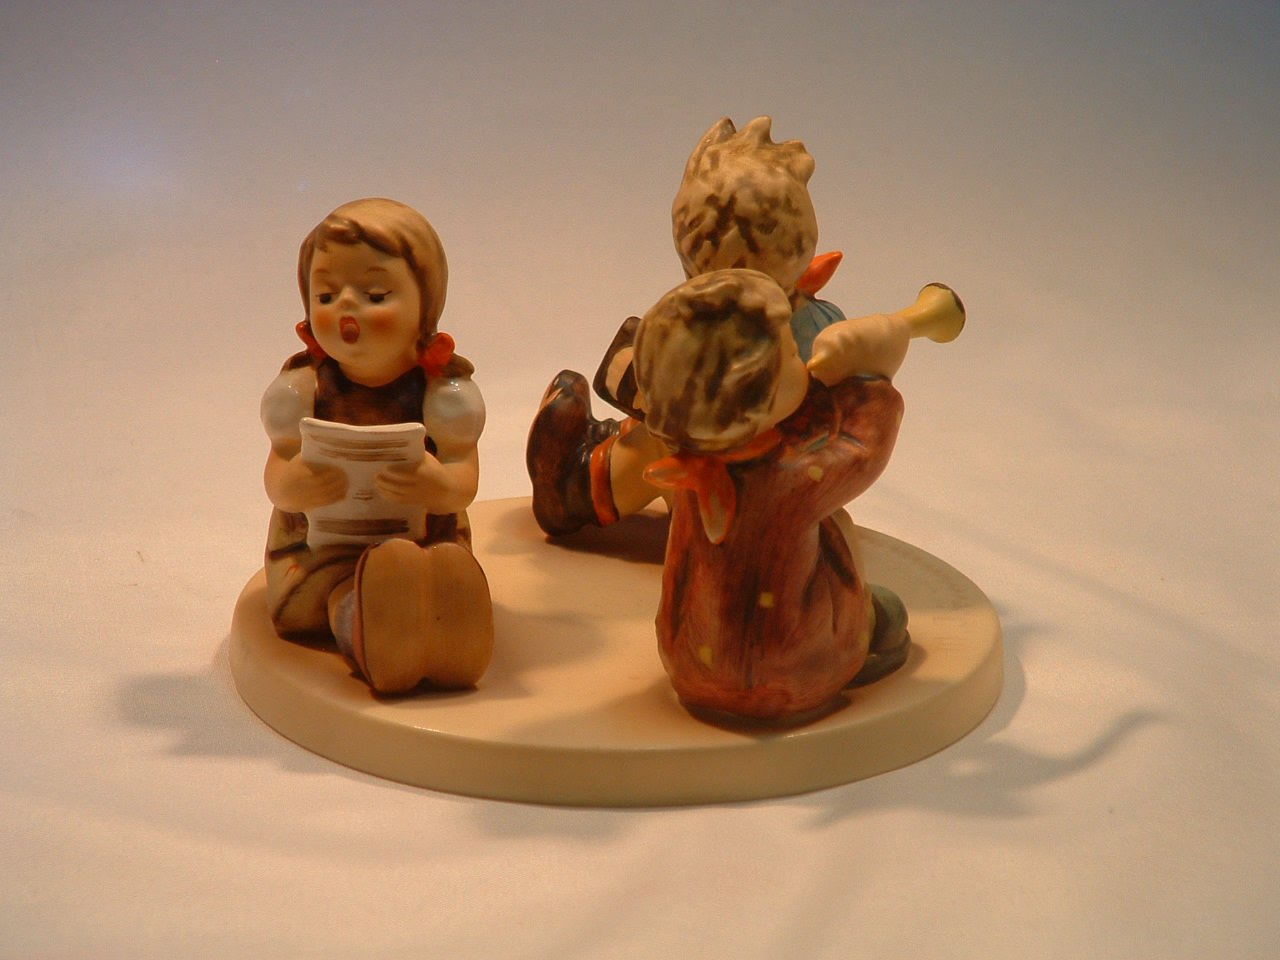 Vintage Hummel Goebel Germany Little Band Collectible Figurines